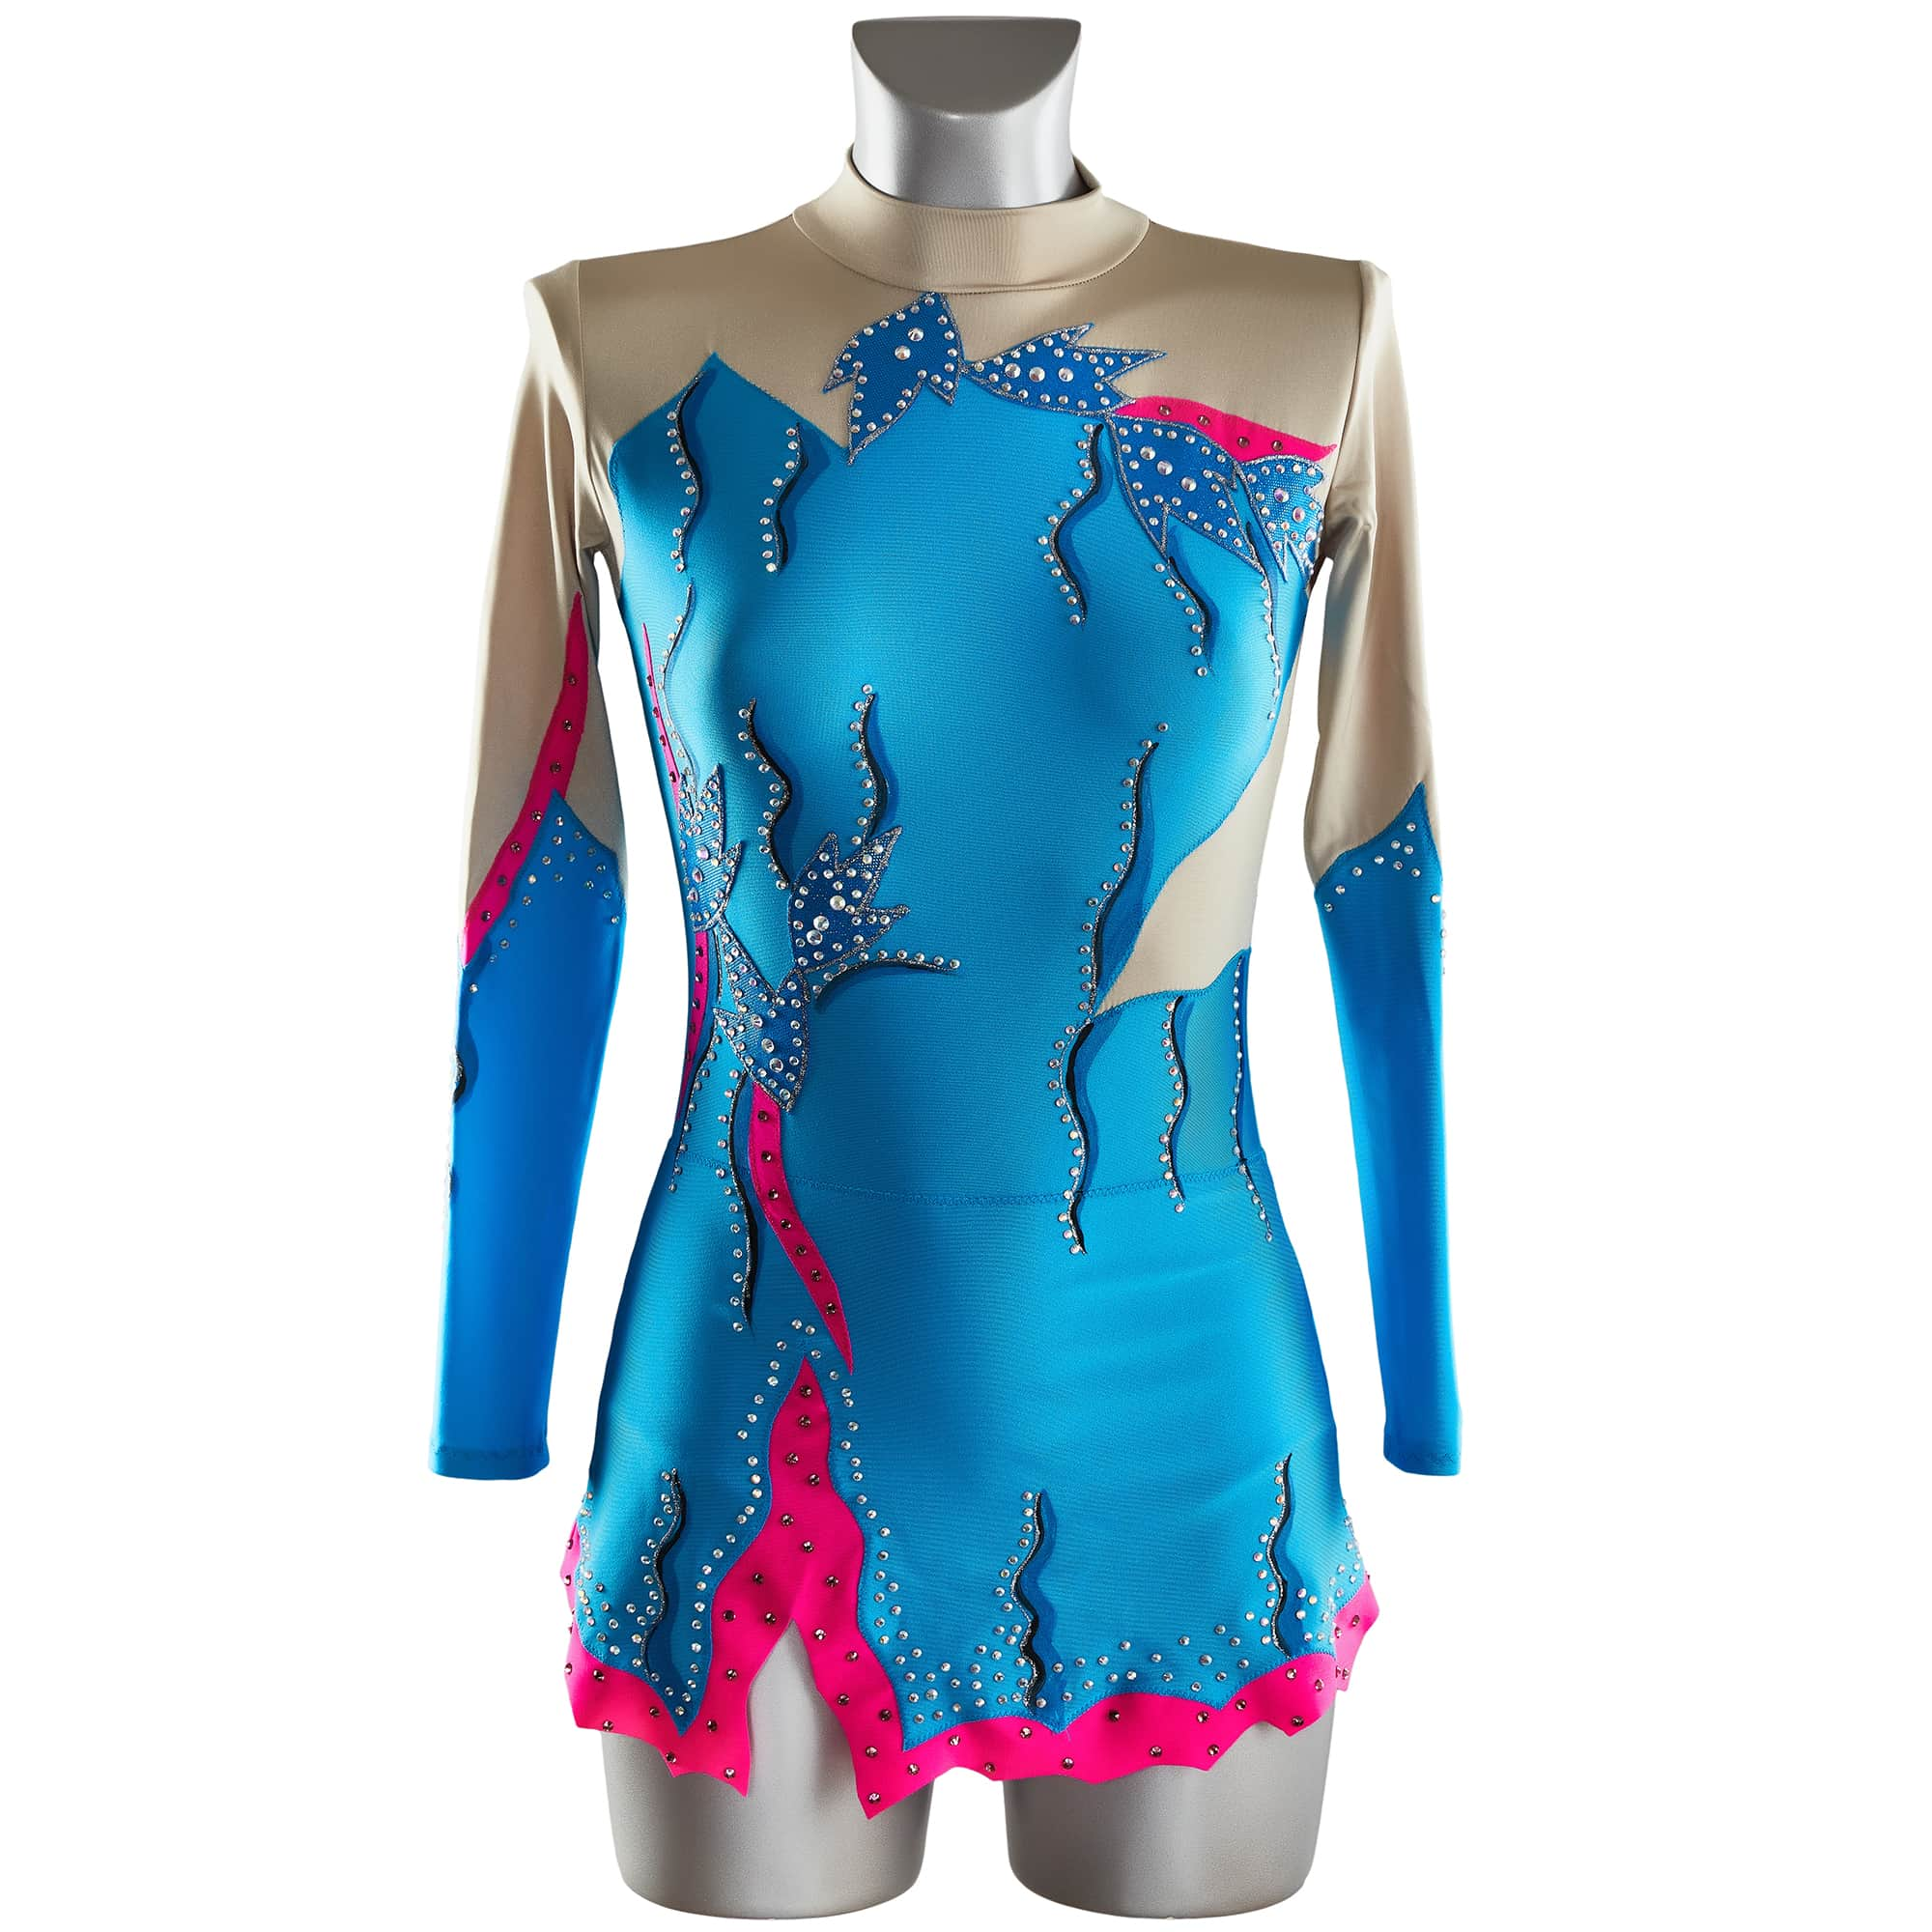 Rhythmic Gymnastics Leotard № 120 with two sleeves made in Blue, dark blue & hot pink colours